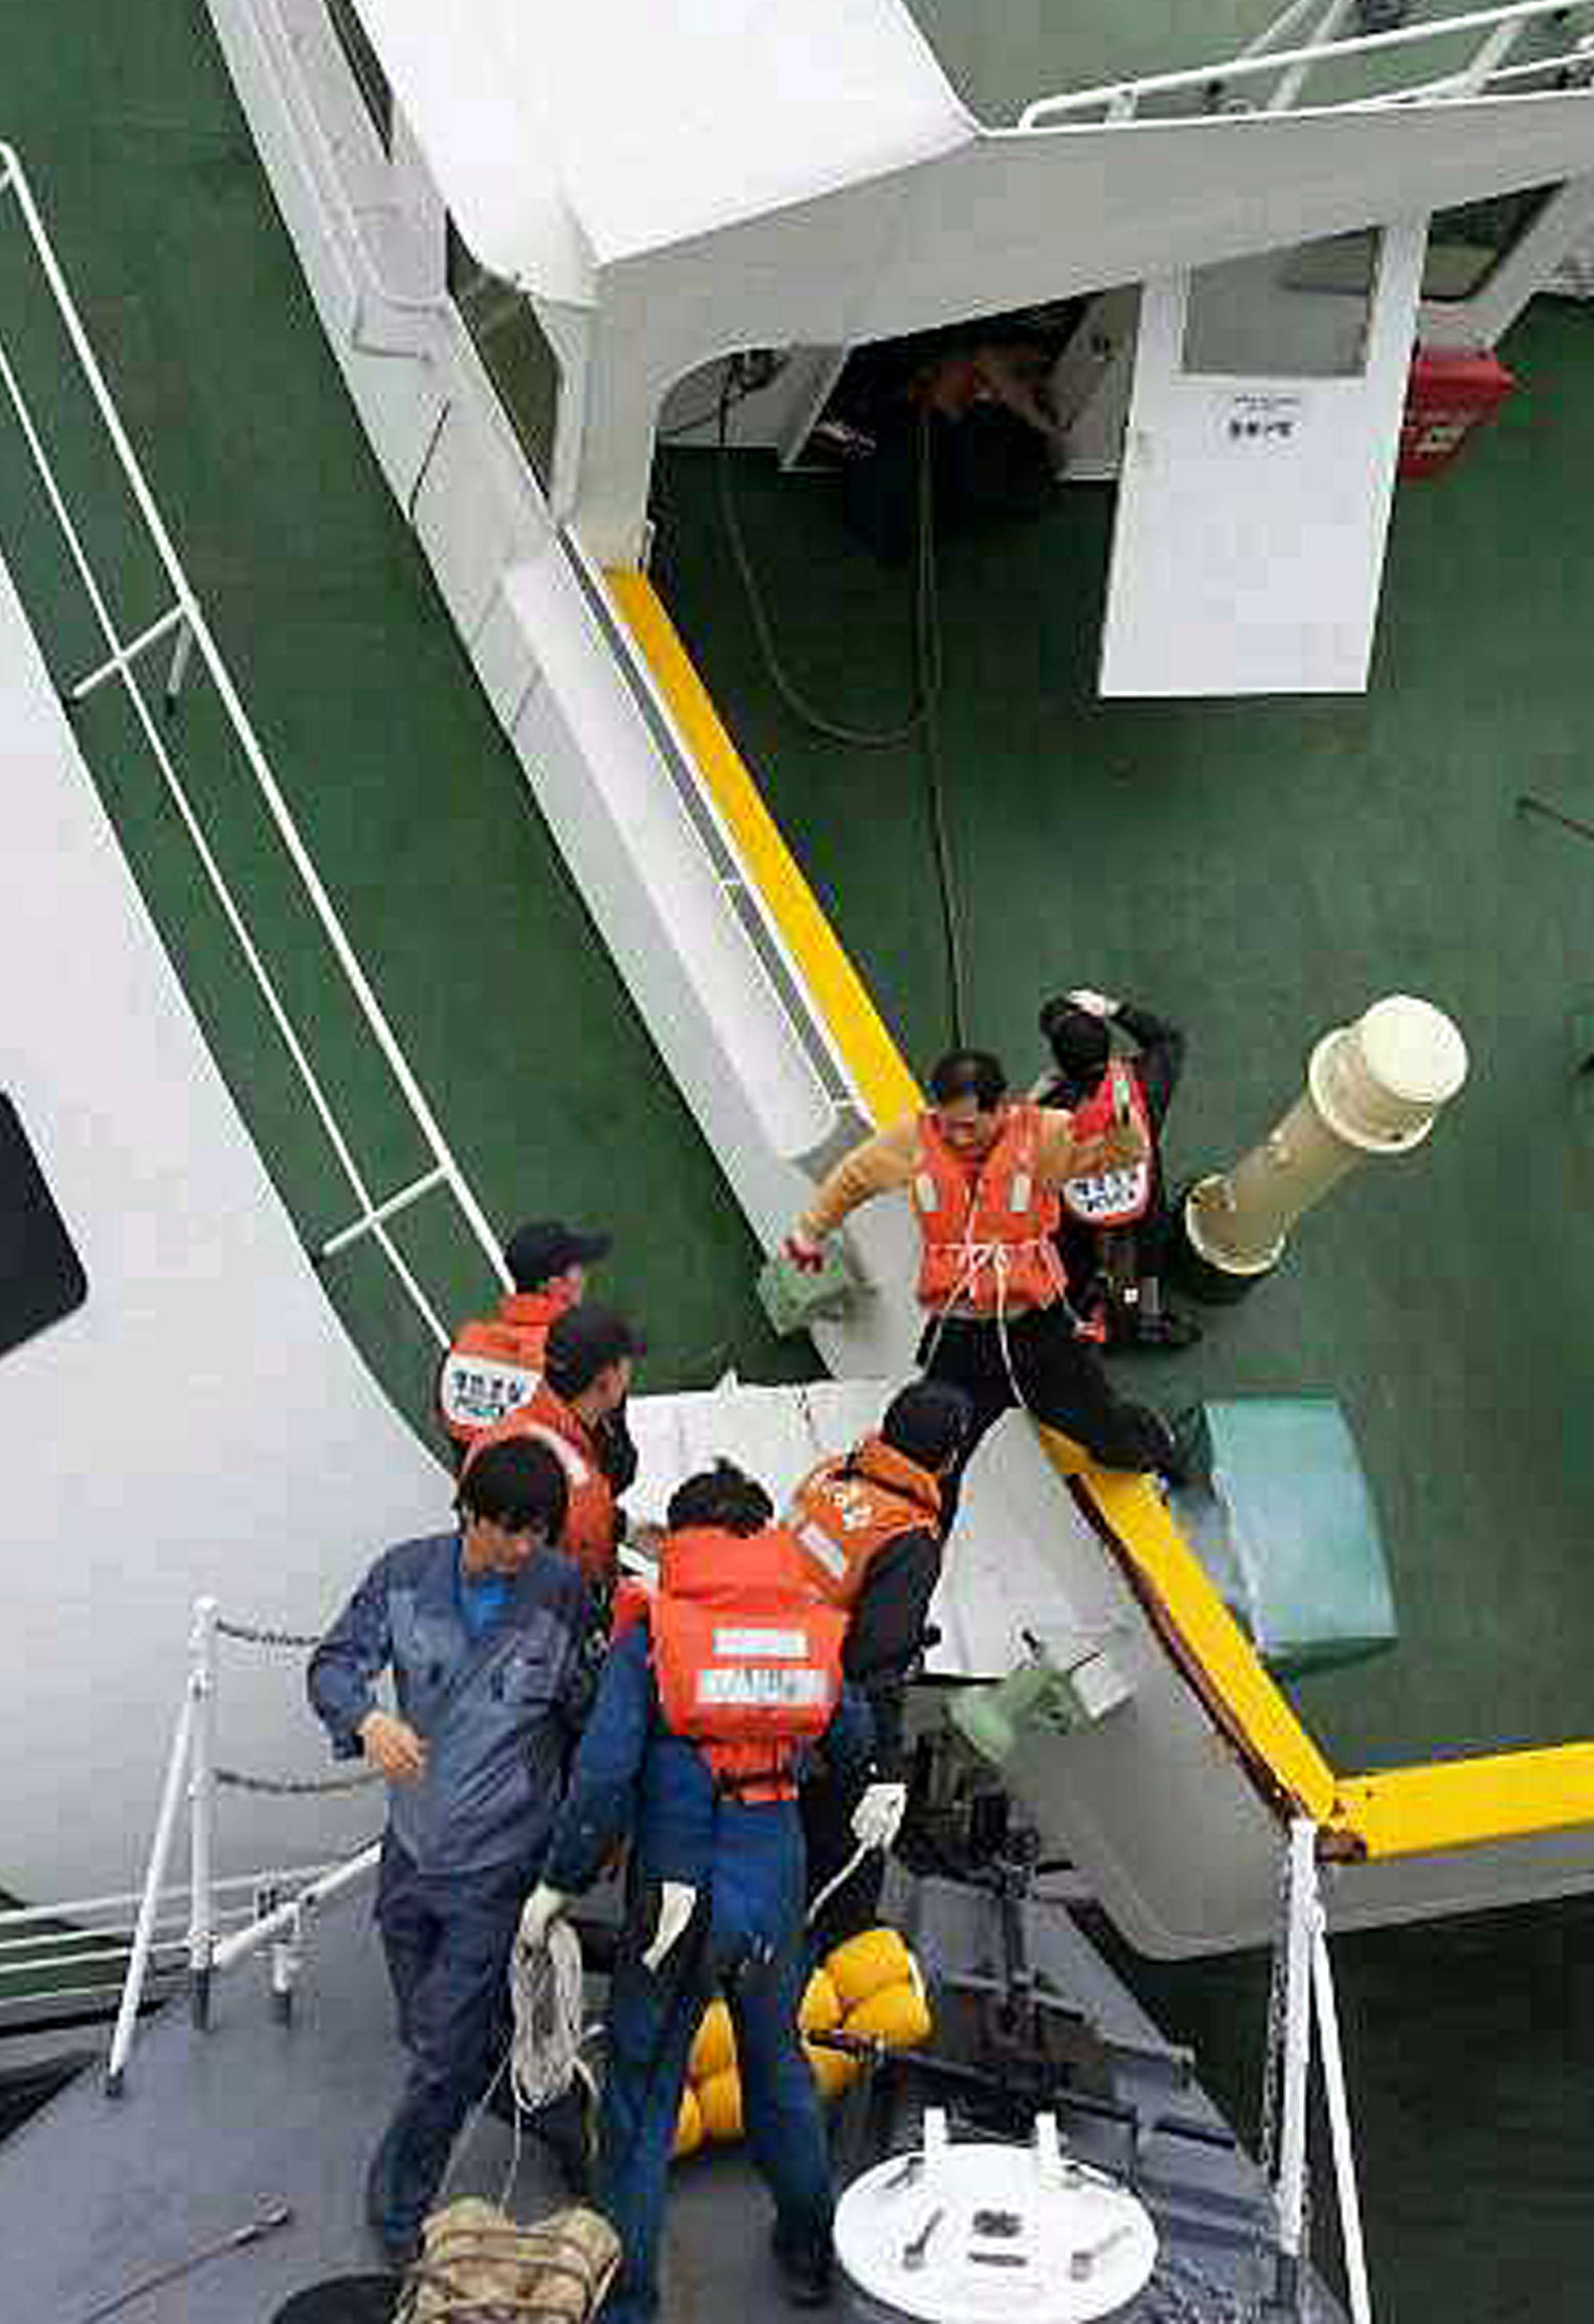 In this photo released by South Korea Coast Guard via Yonhap News Agency, South Korean coast guard rescue passengers from a ferry in the water off the southern coast near Jindo, South Korea, Wednesday, April 16, 2014. The ferry carrying 459 people, mostly high school students on an overnight trip to a tourist island, sank off South Korea's southern coast on Wednesday, leaving nearly 300 people missing despite a frantic, hourslong rescue by dozens of ships and helicopters.